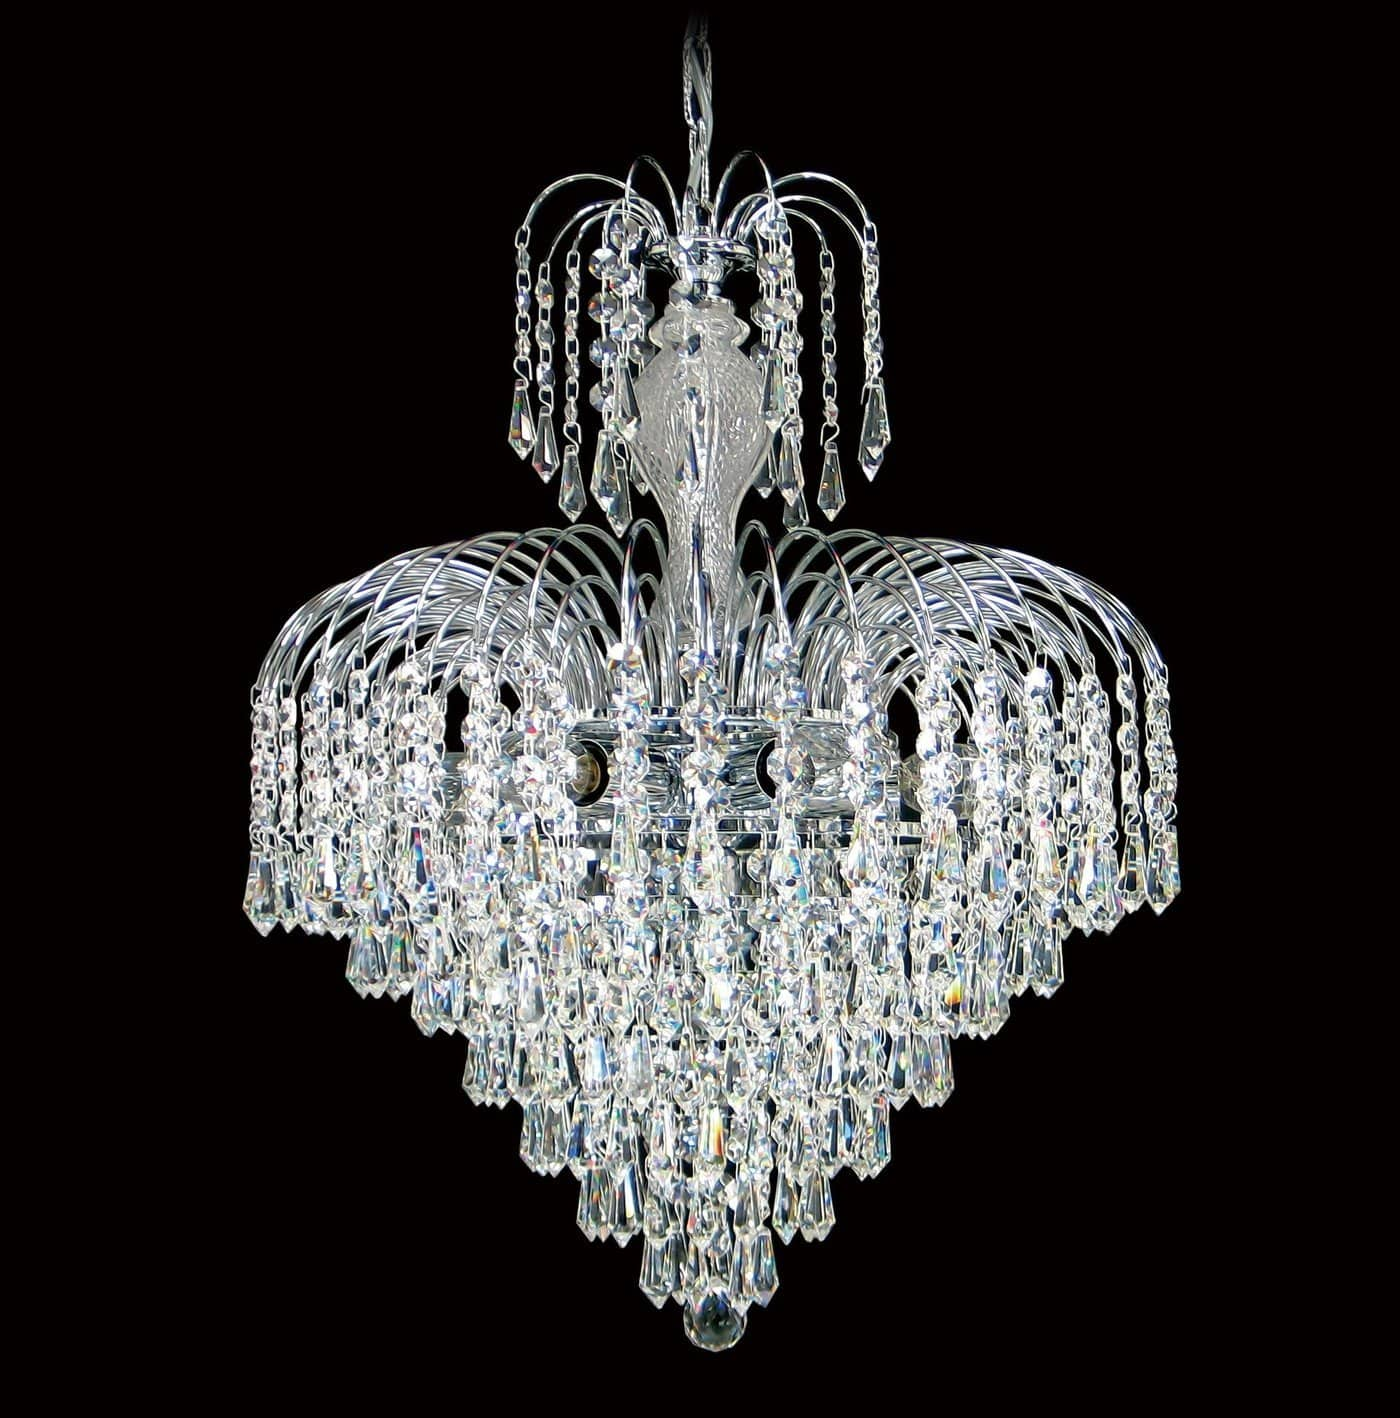 7 Light 17 Asfour Lead Crystal Chrome Waterfall Chandelier